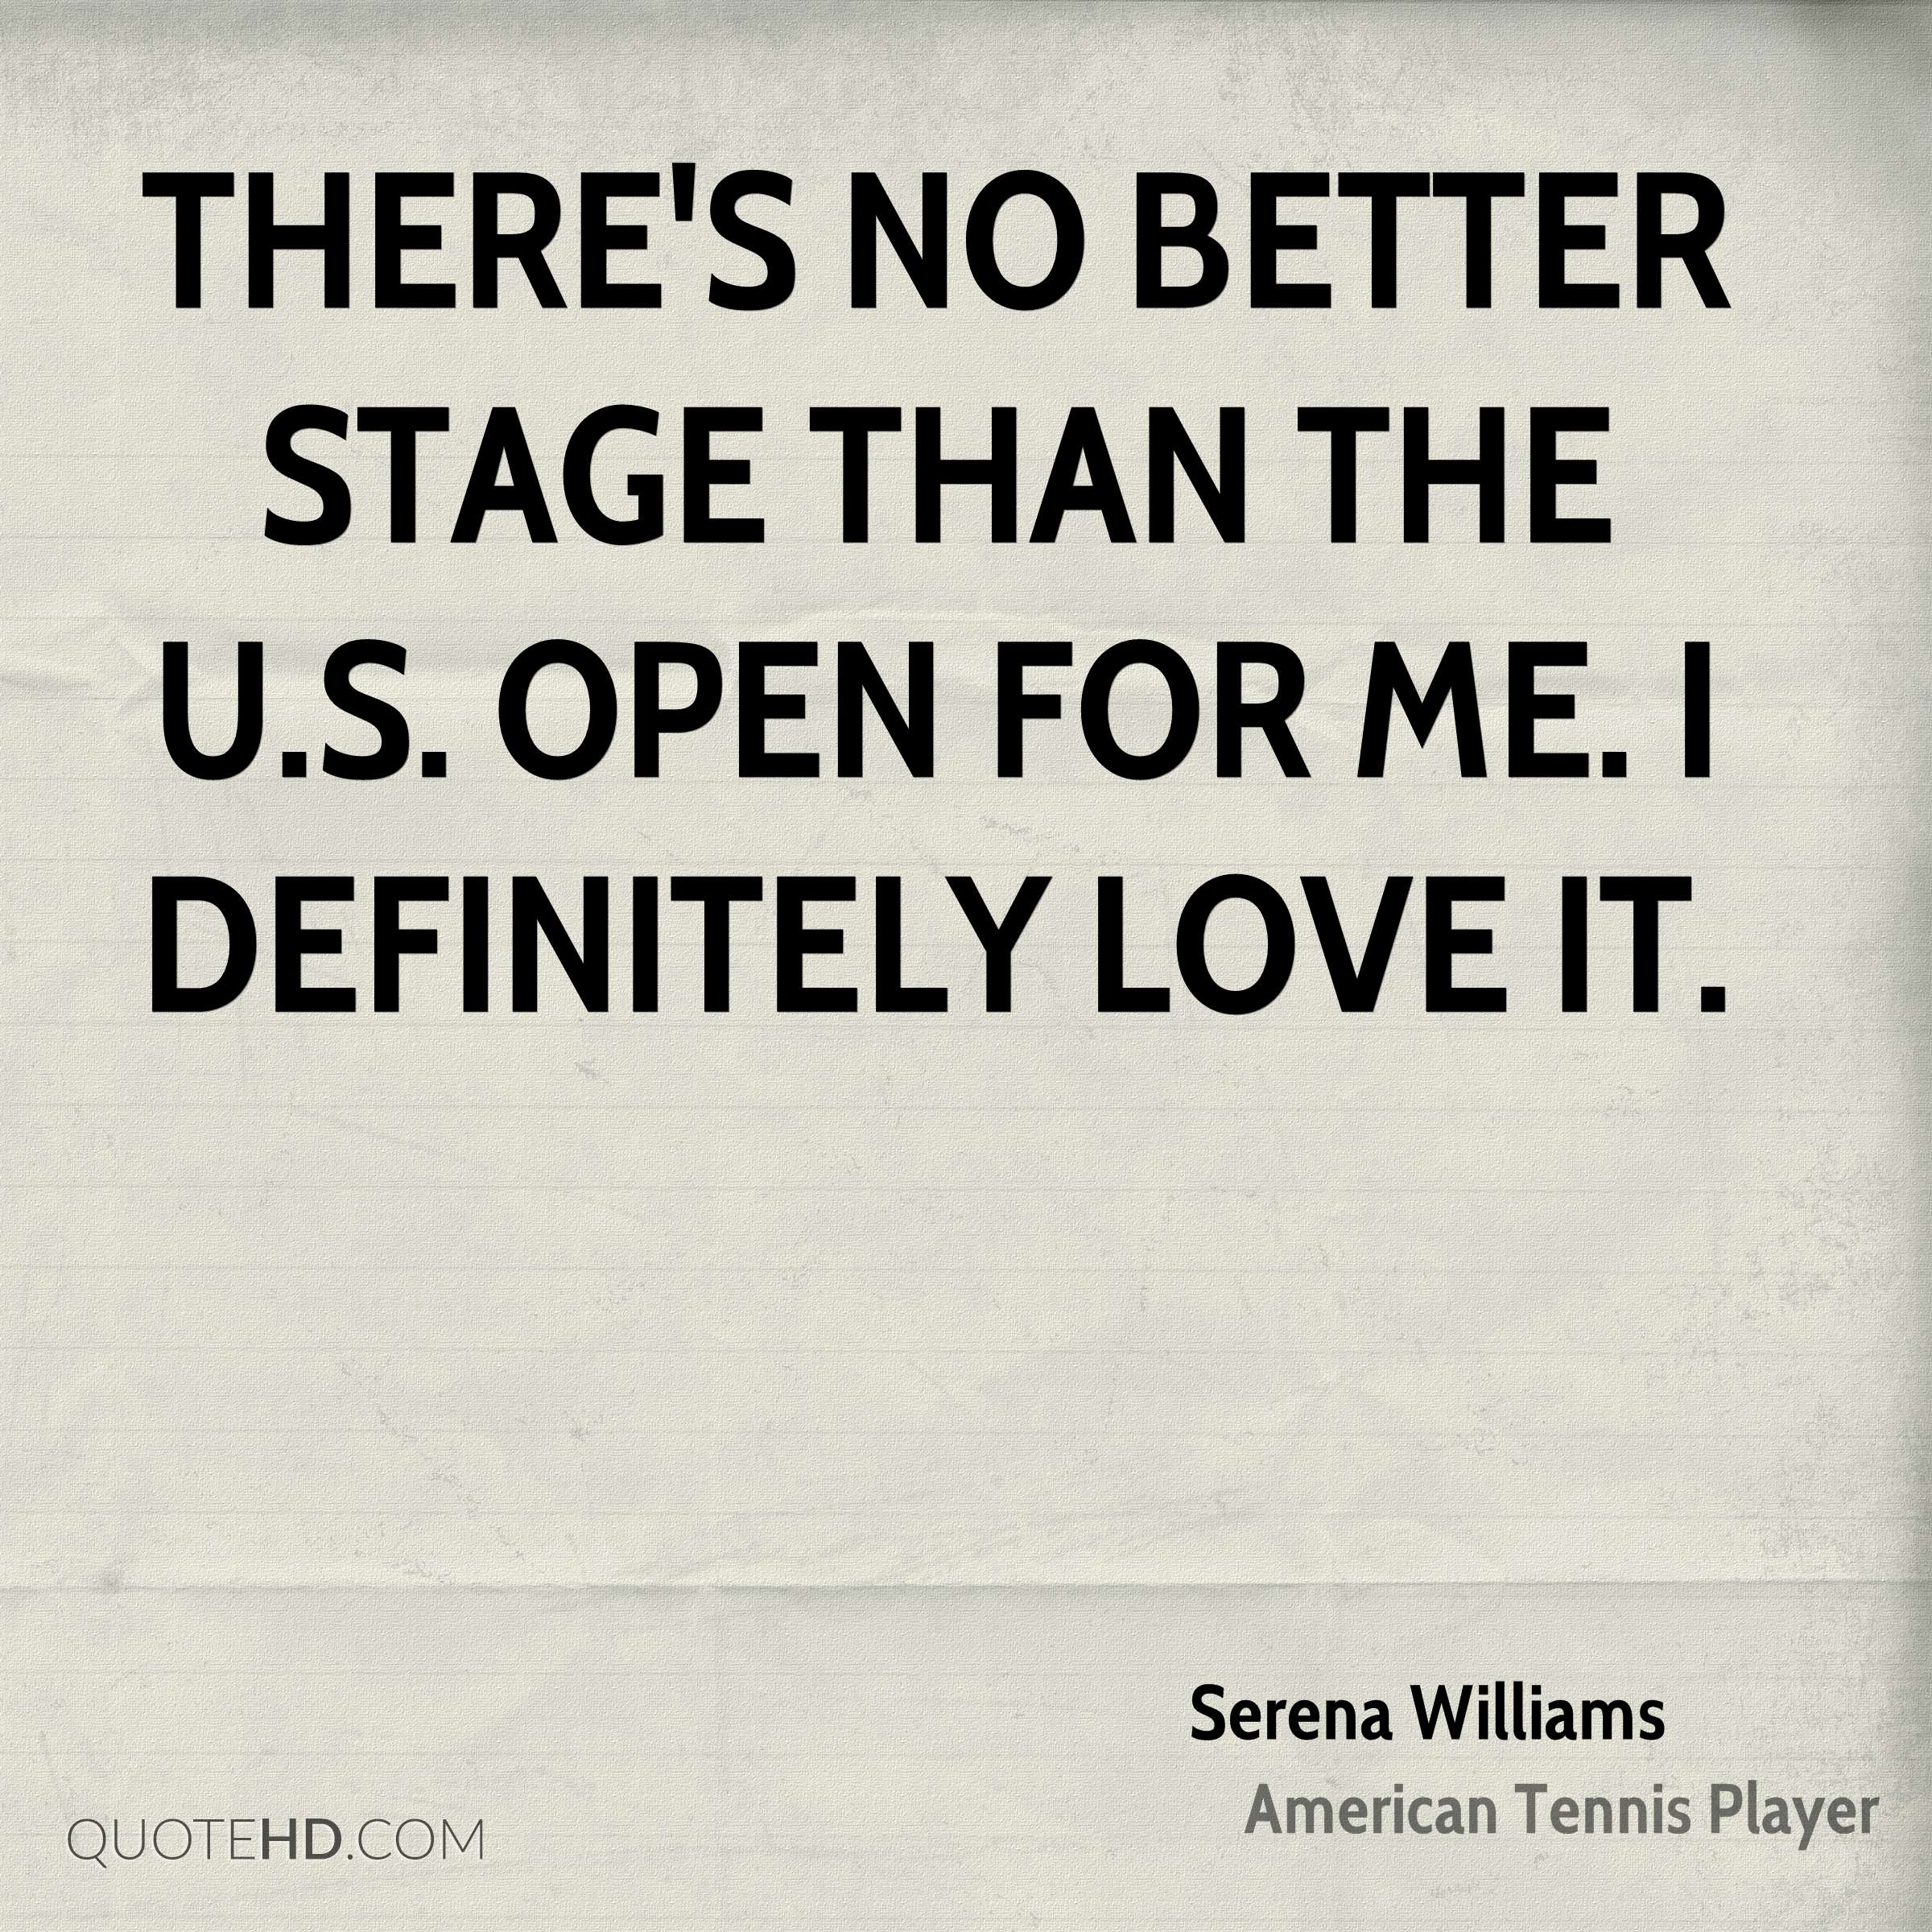 There's no better stage than the U.S. Open for me. I definitely love it.